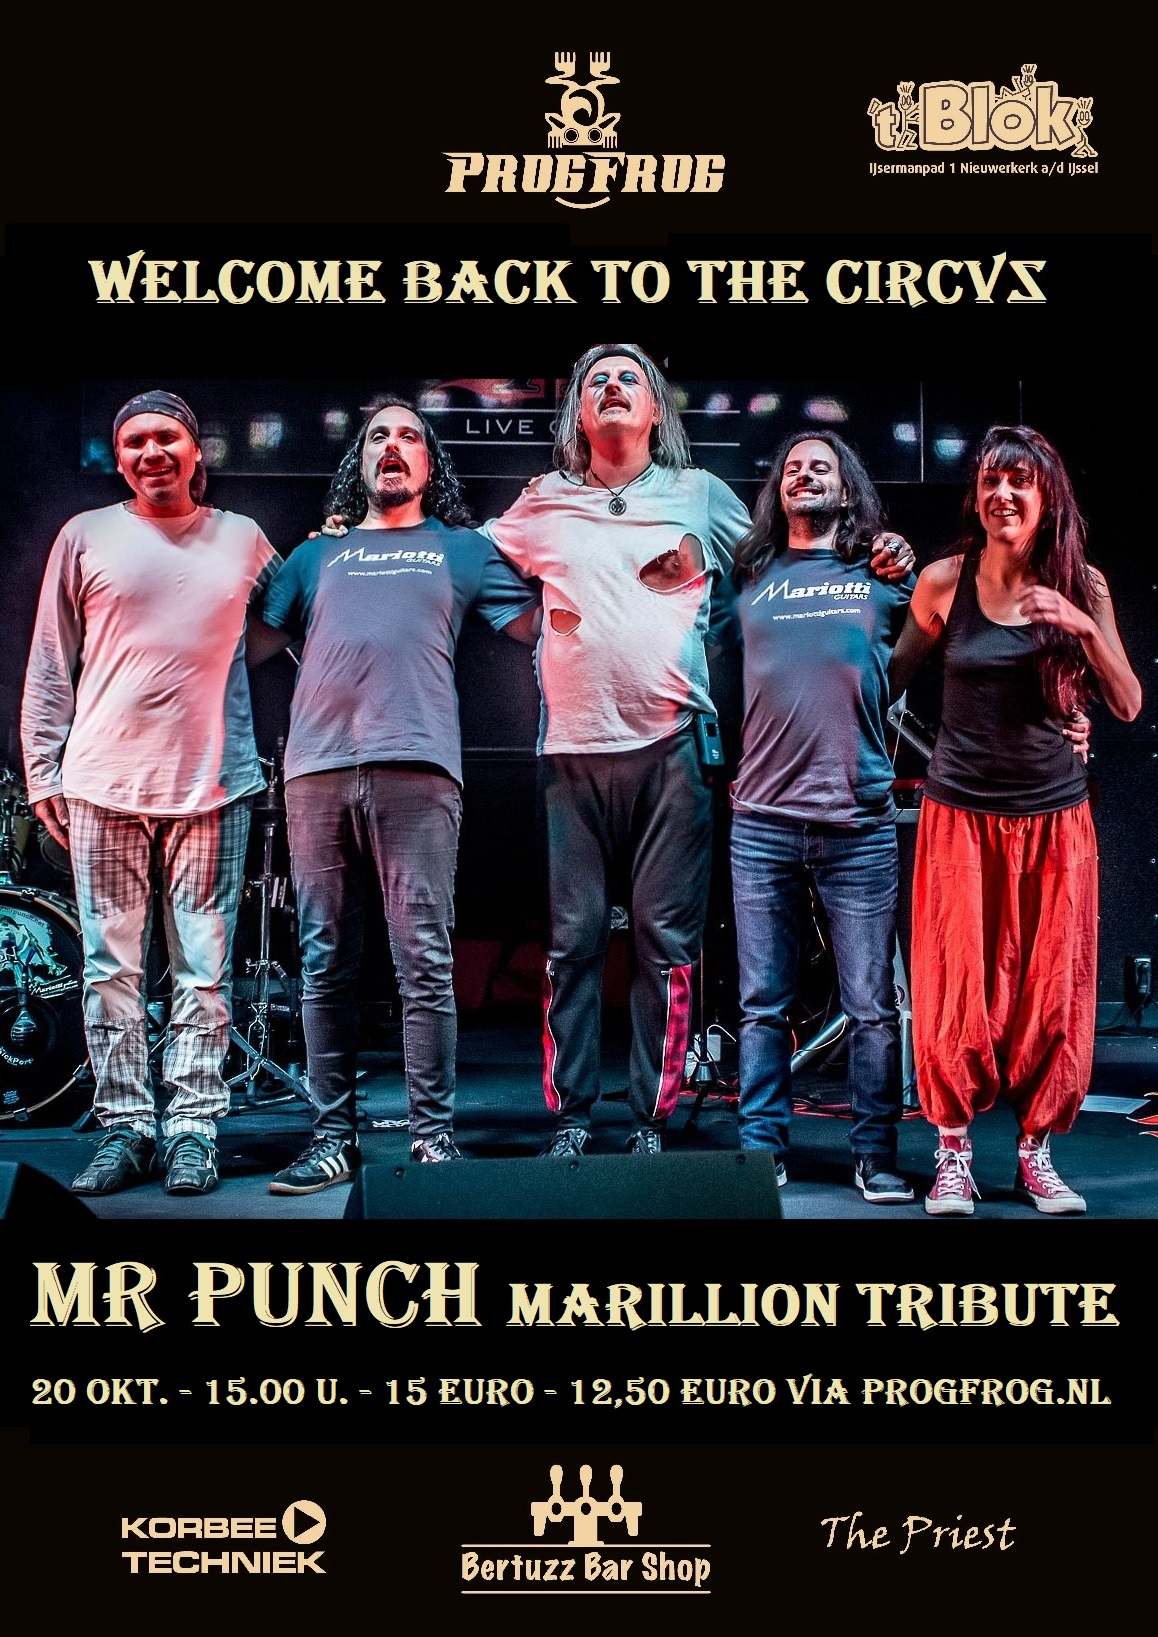 Mr. Punch (Marillion Tribute)